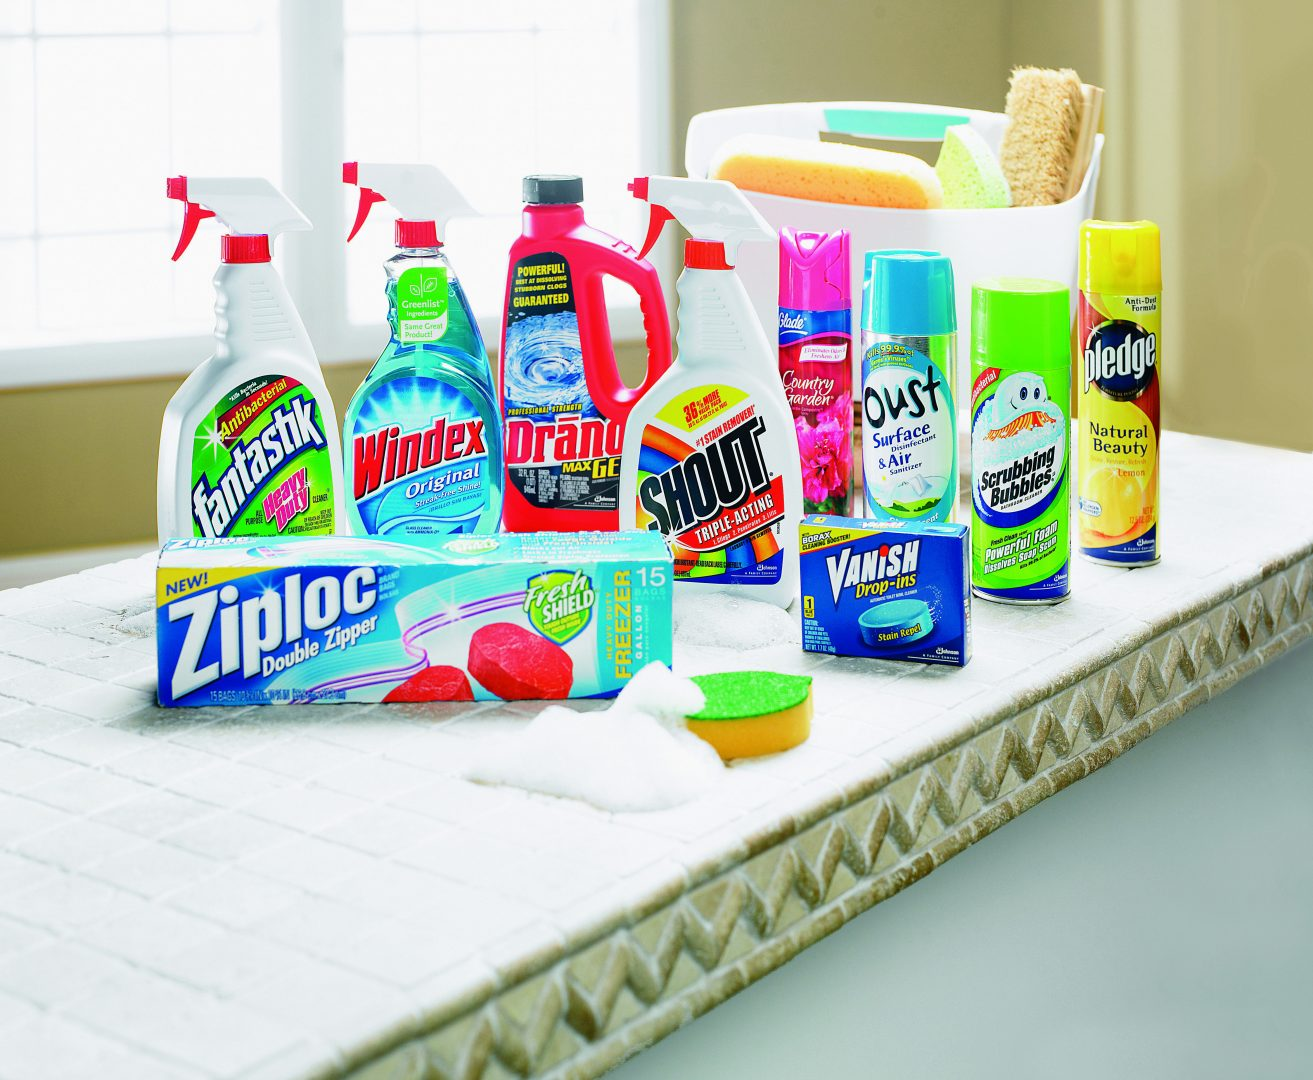 With Rocky's, spring cleaning can be good, clean fun